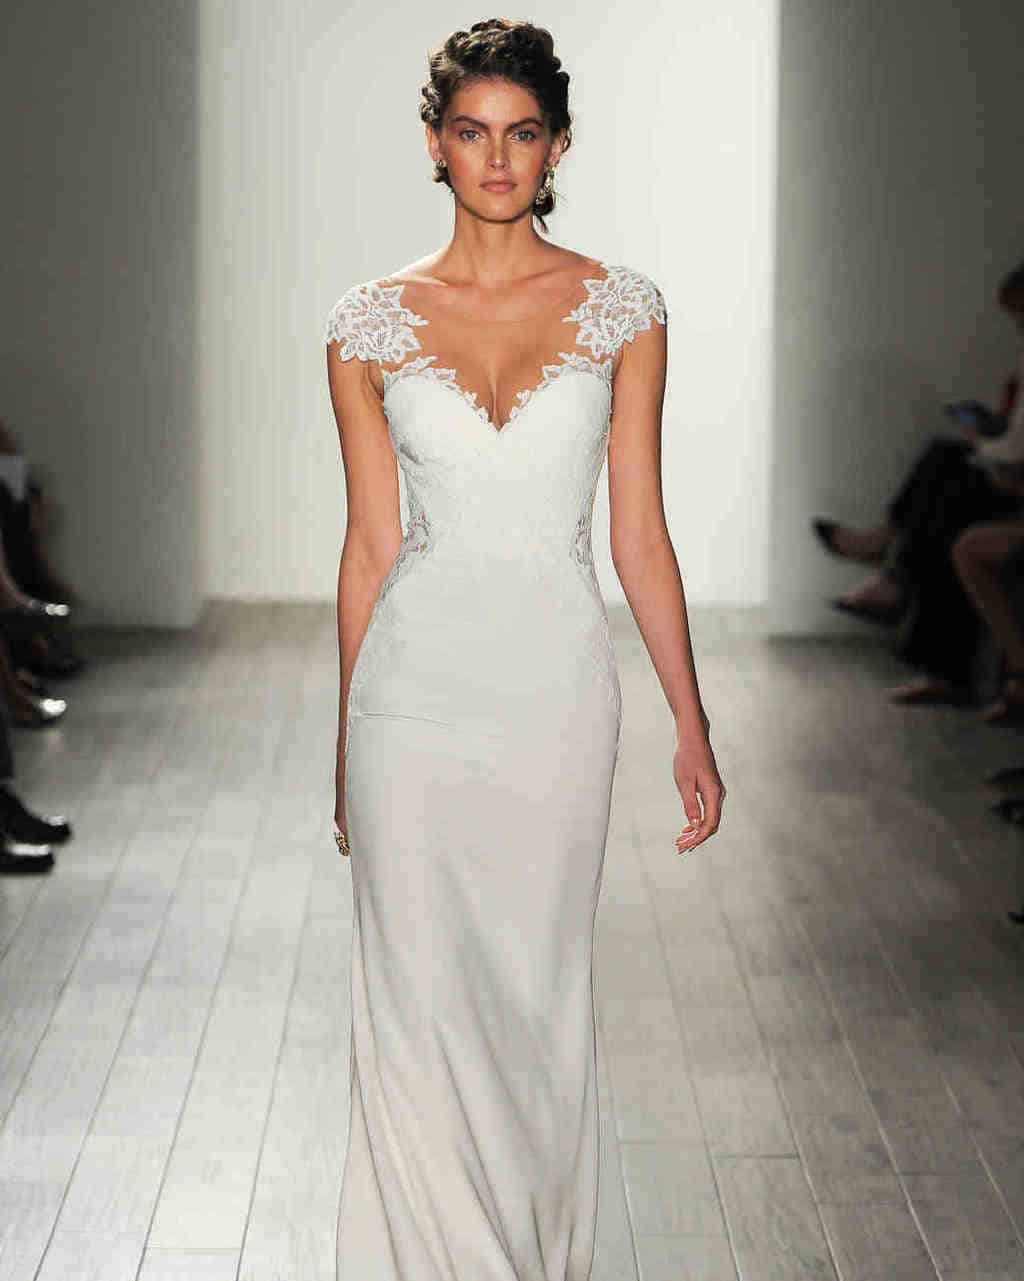 jim-hjelm-wedding-dress-fall2017-6203351-006_vert